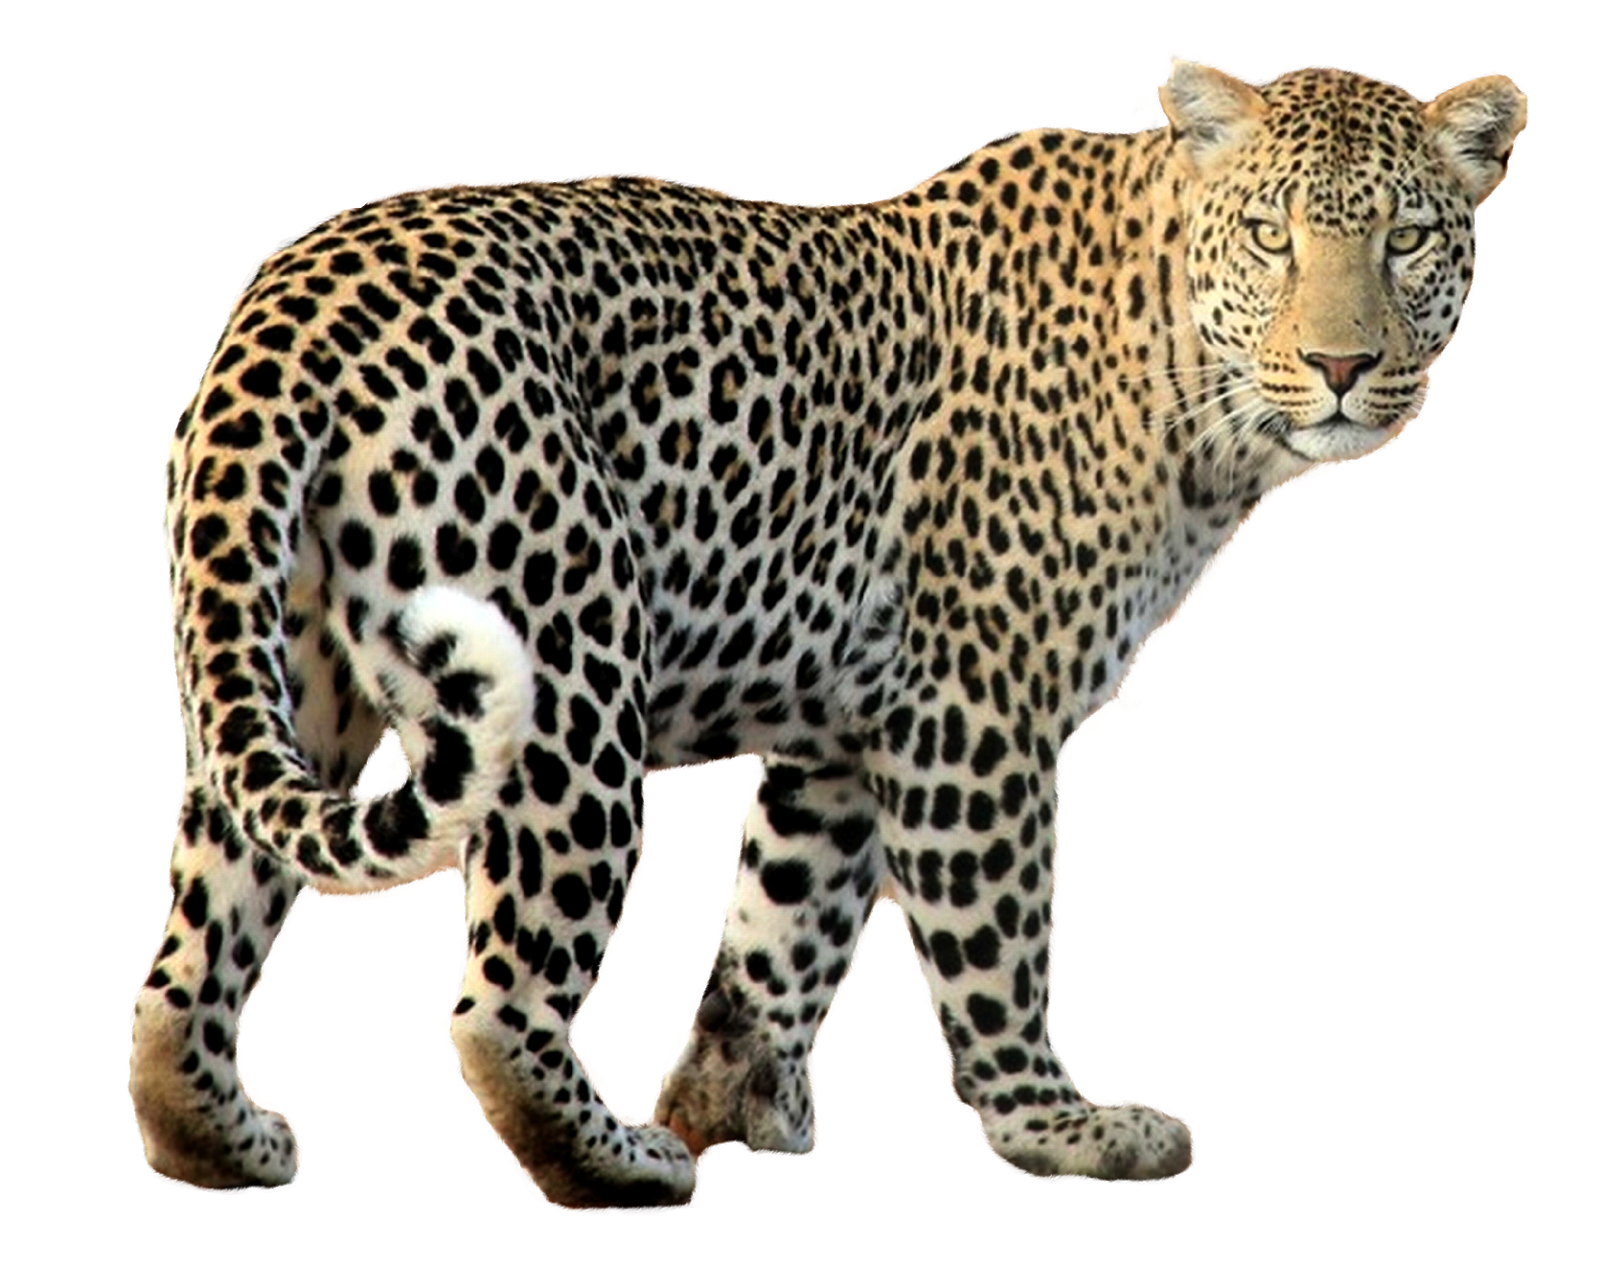 PNG Sector: Indian leopard - Leopard/Cheetah Free Png Image